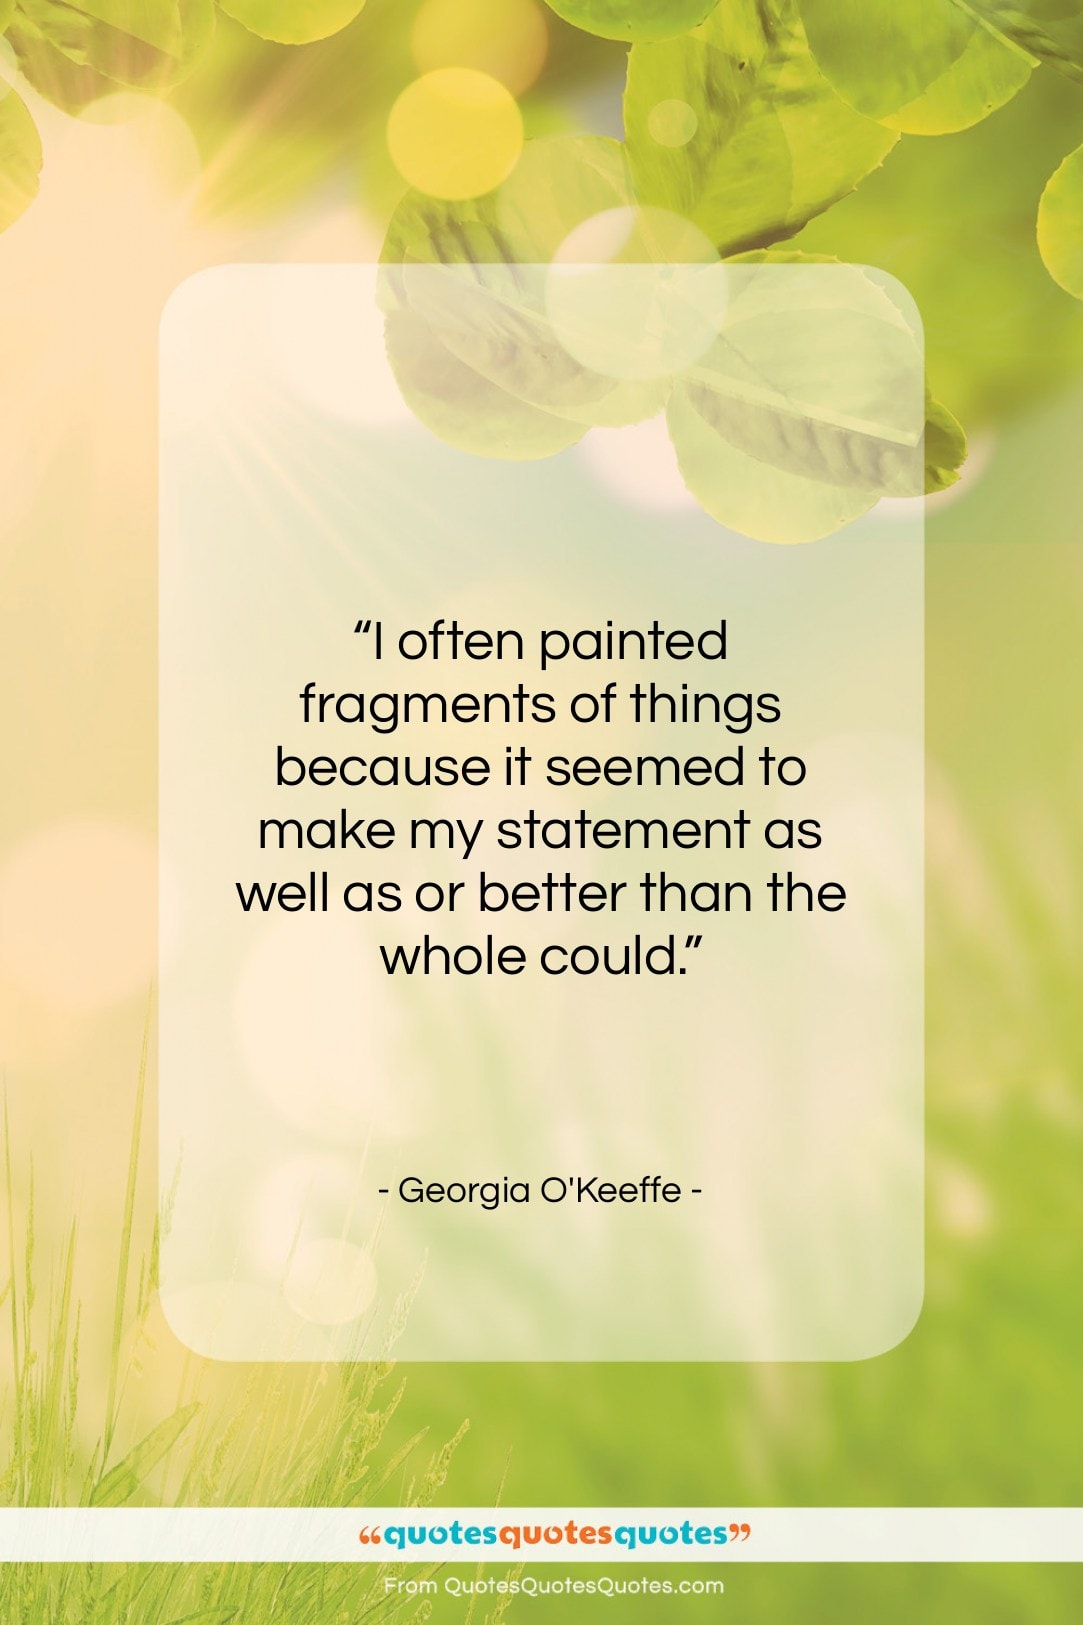 """Georgia O'Keeffe quote: """"I often painted fragments of things because…""""- at QuotesQuotesQuotes.com"""